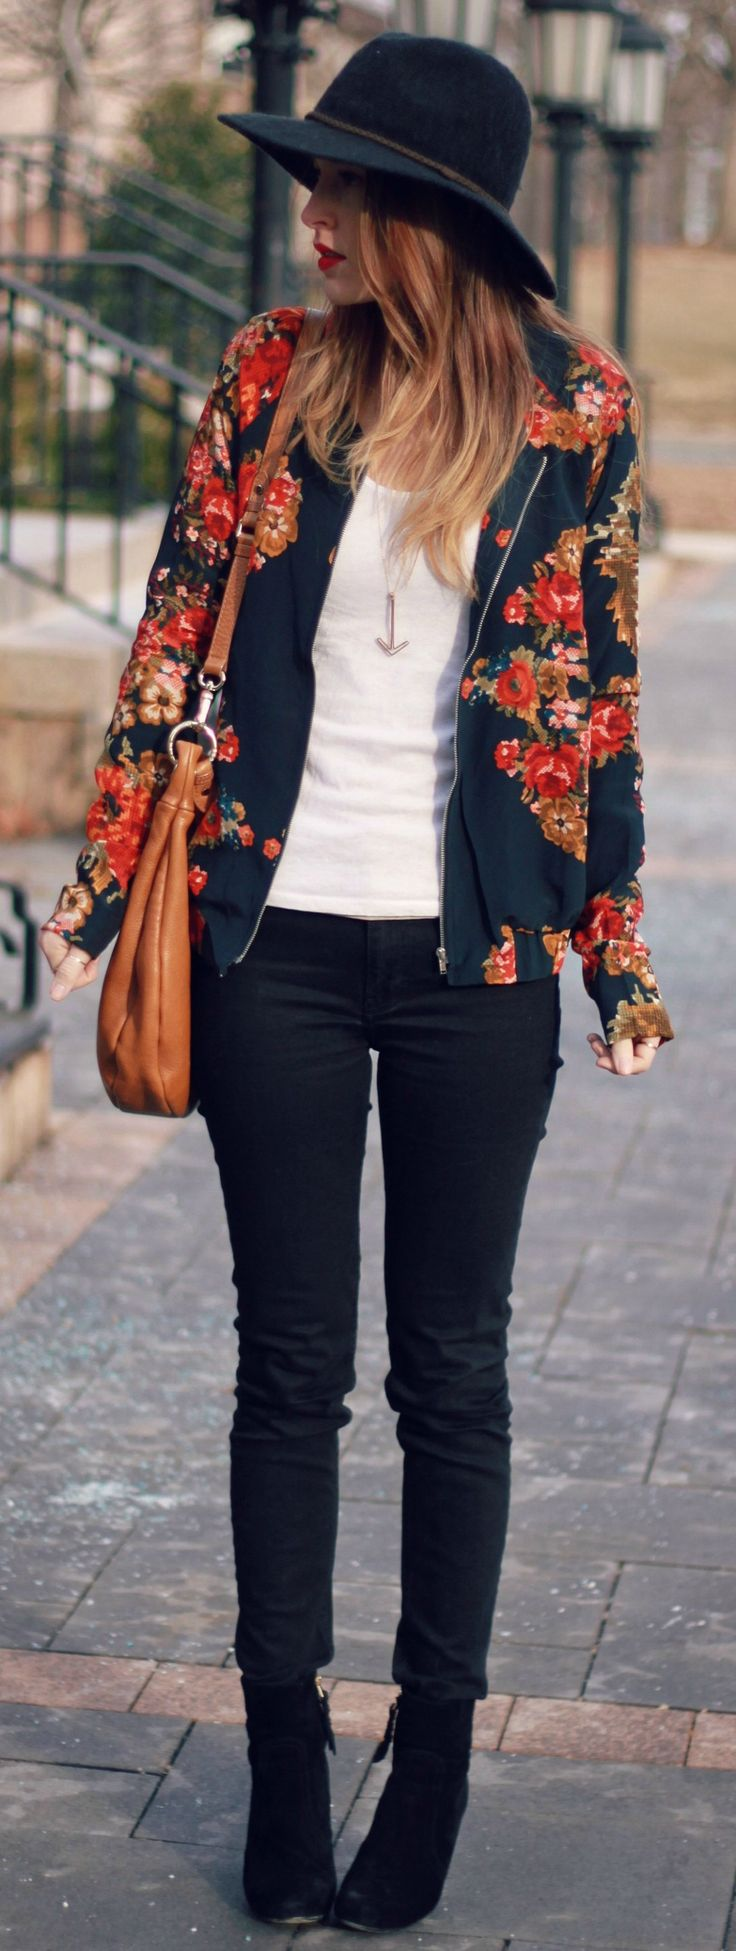 Floral Print Jacket + Black Skinnies